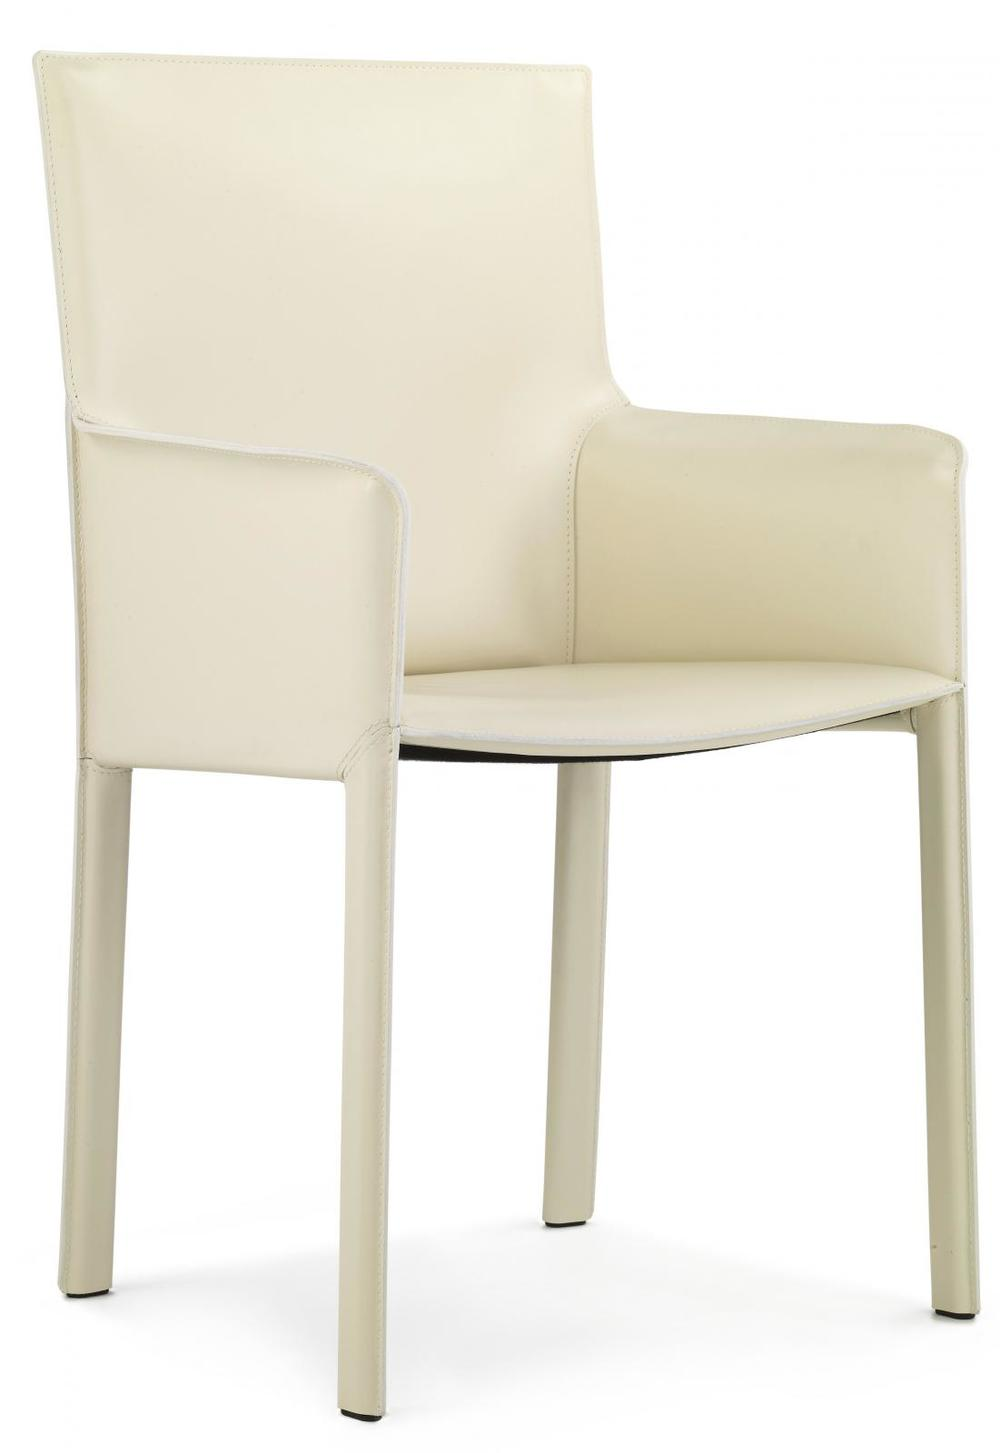 MDC 114 Modern Dining Chairs